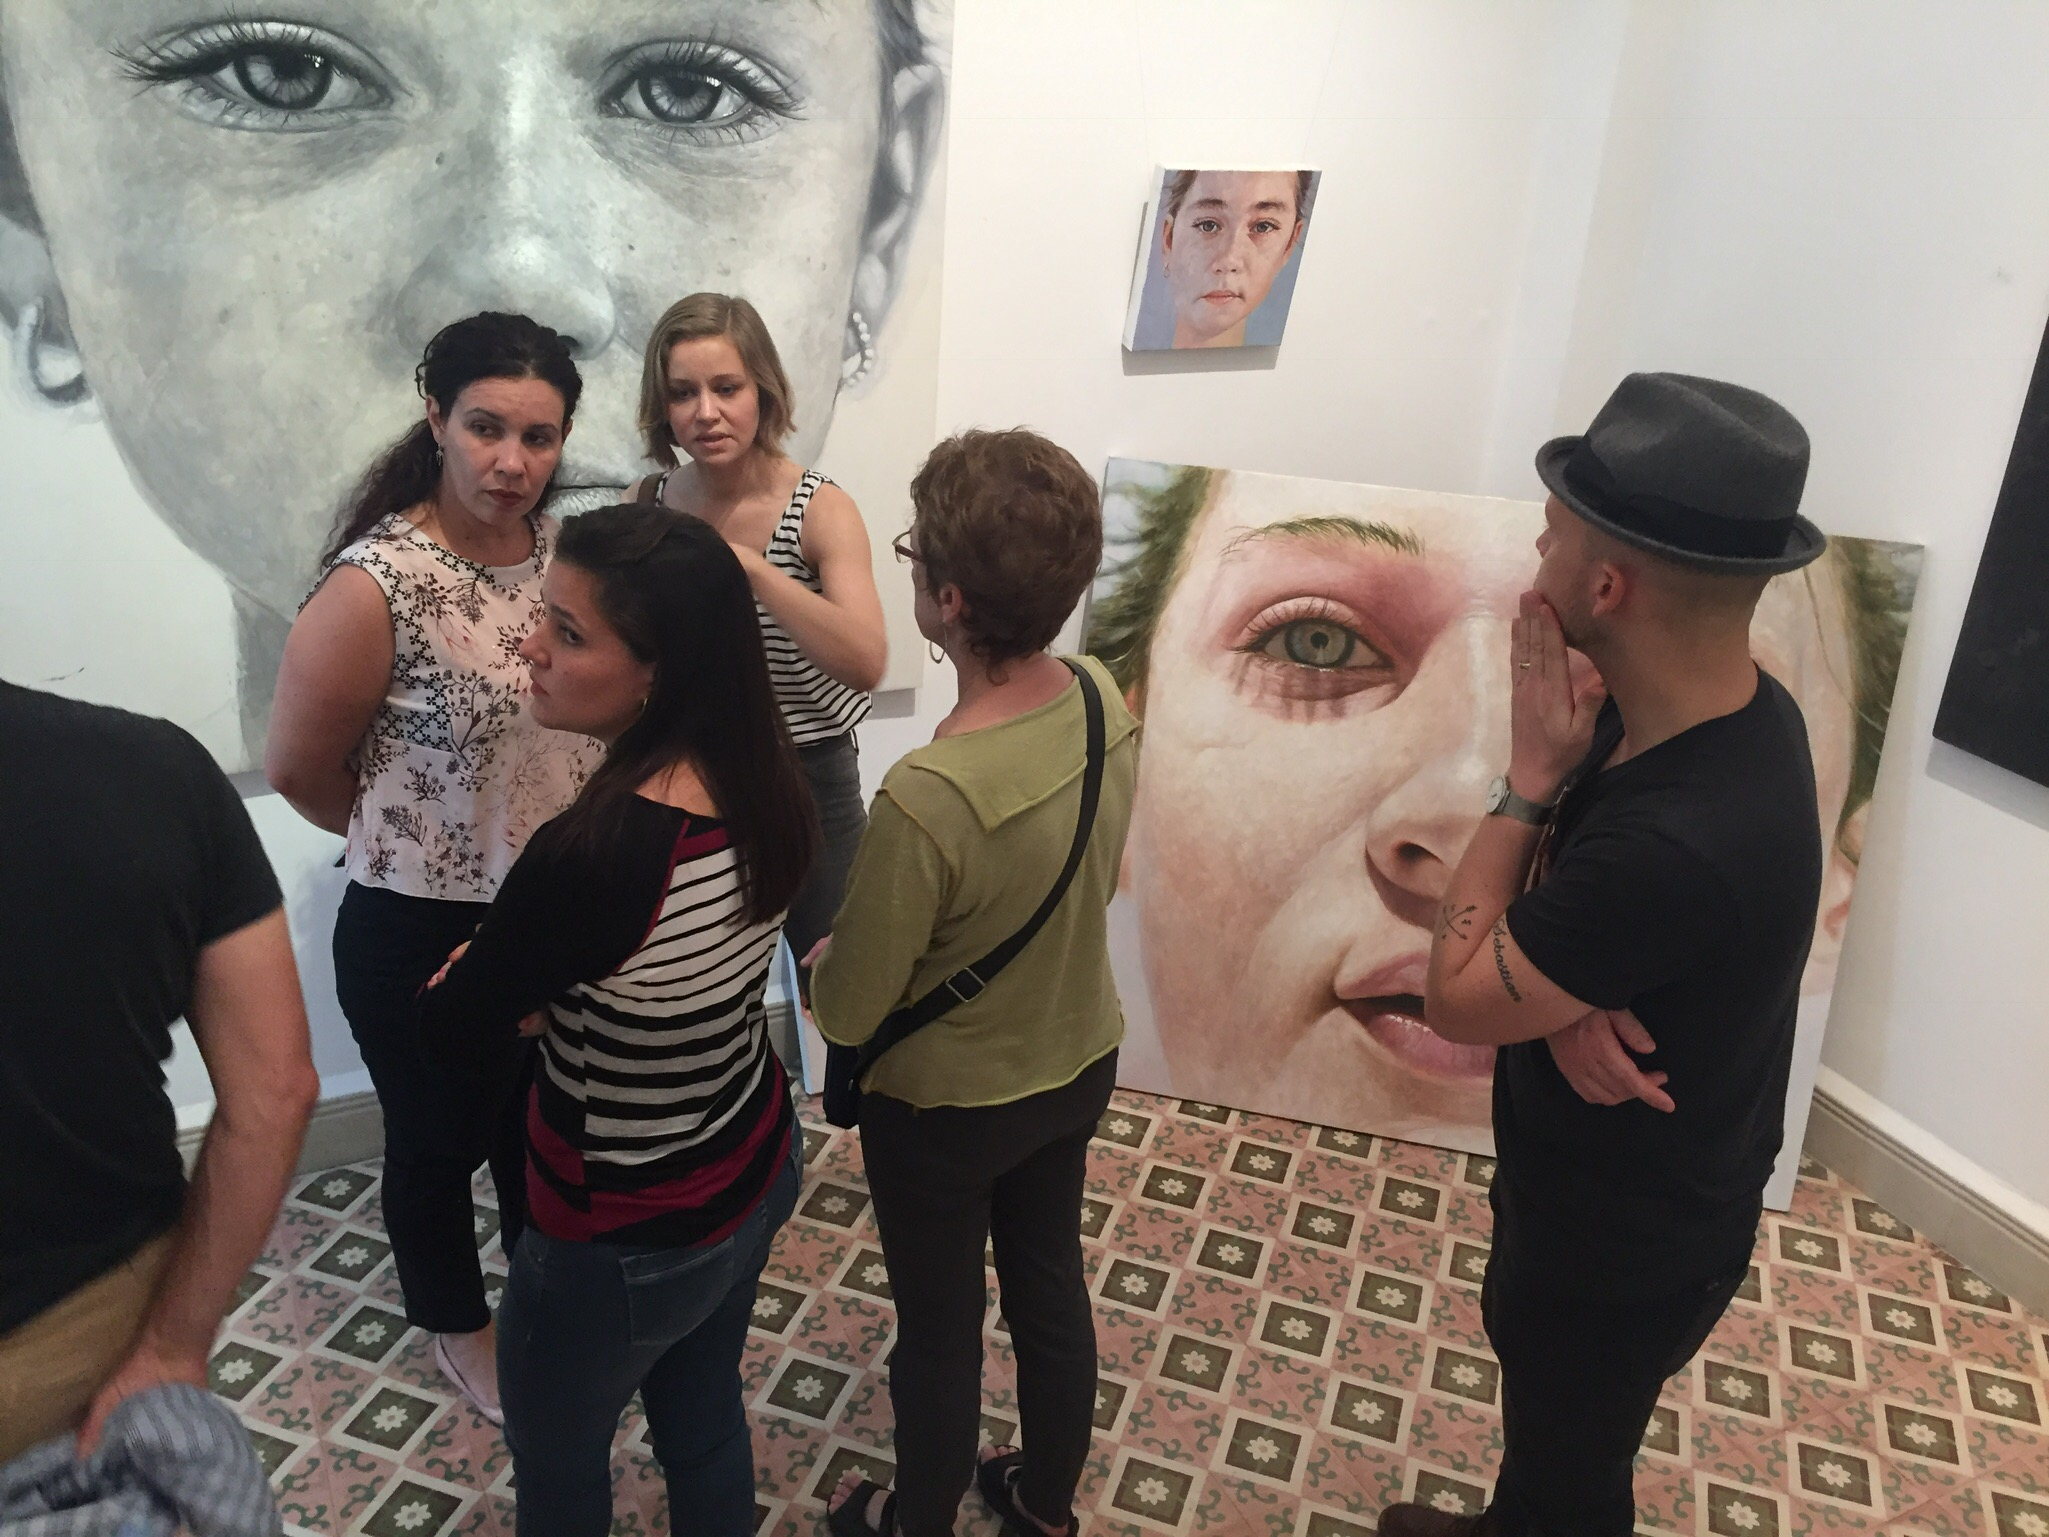 Estudio Arte Contemporaneo and discussion on Andy Llanes Bulto